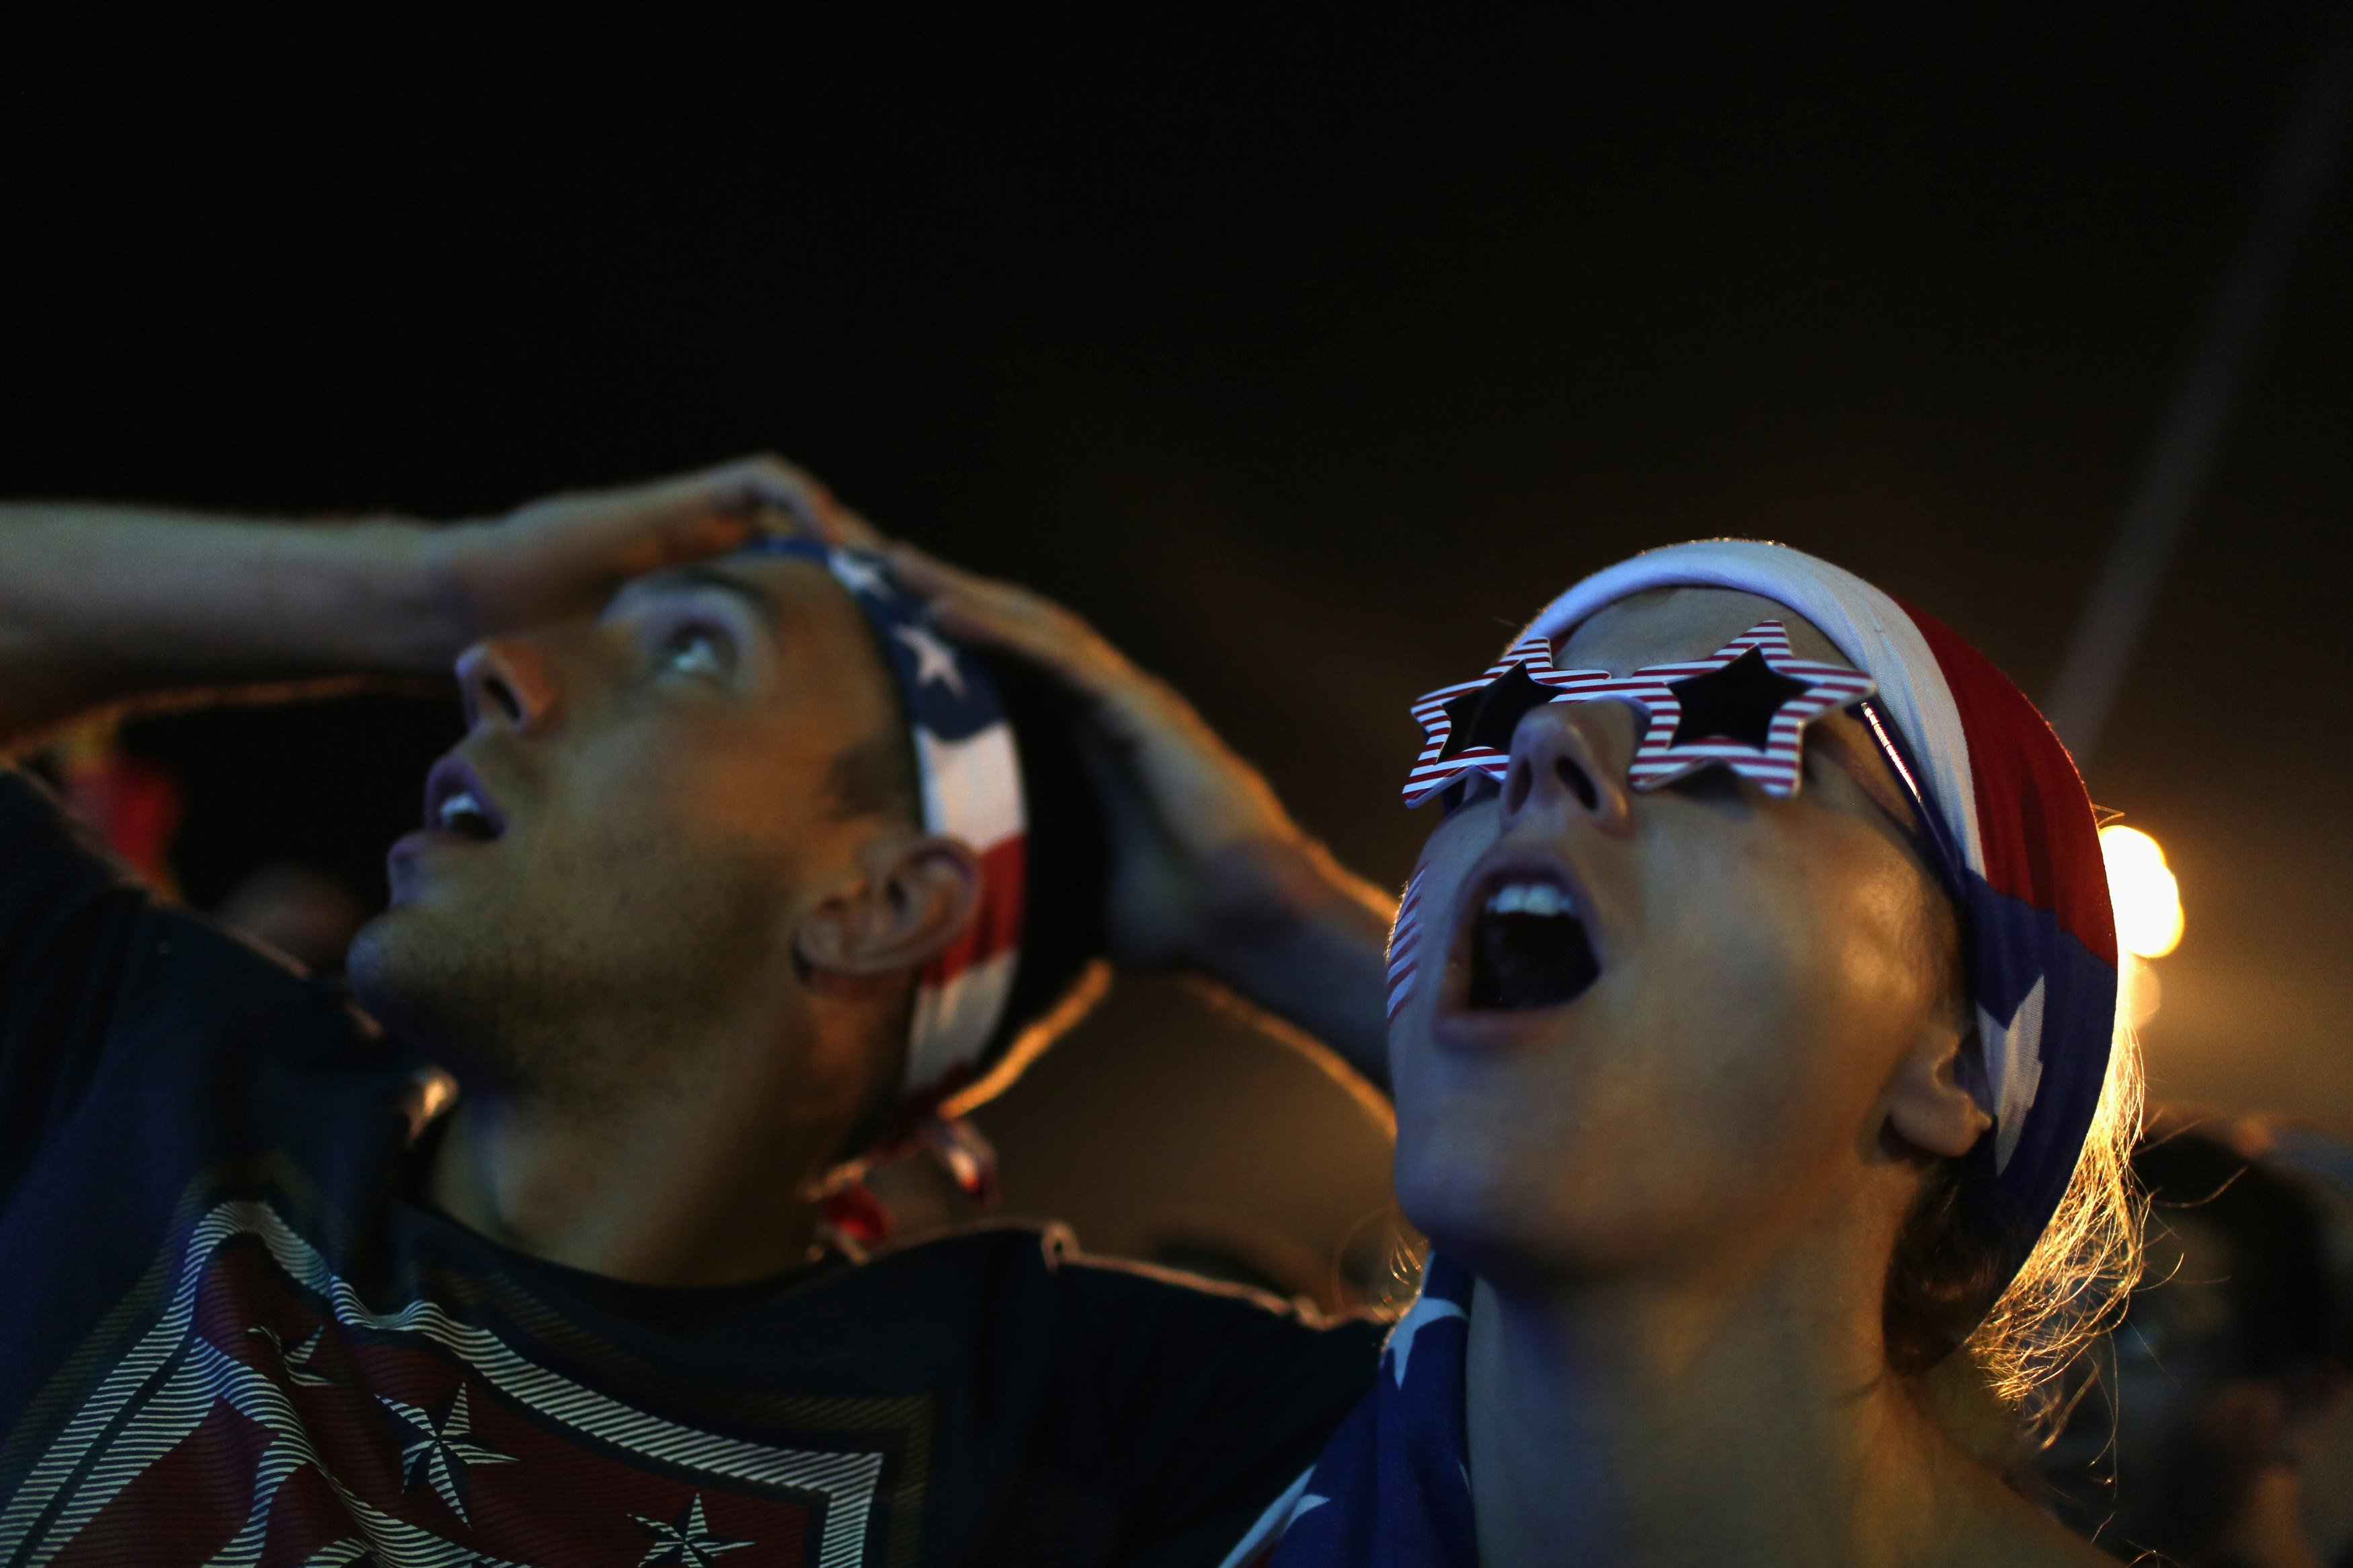 U.S. soccer fans react  as they watch the 2014 World Cup soccer match between U.S. and Ghana, which is broadcast on a large screen at Copacabana beach, in Rio de Janeiro on June 16, 2014.